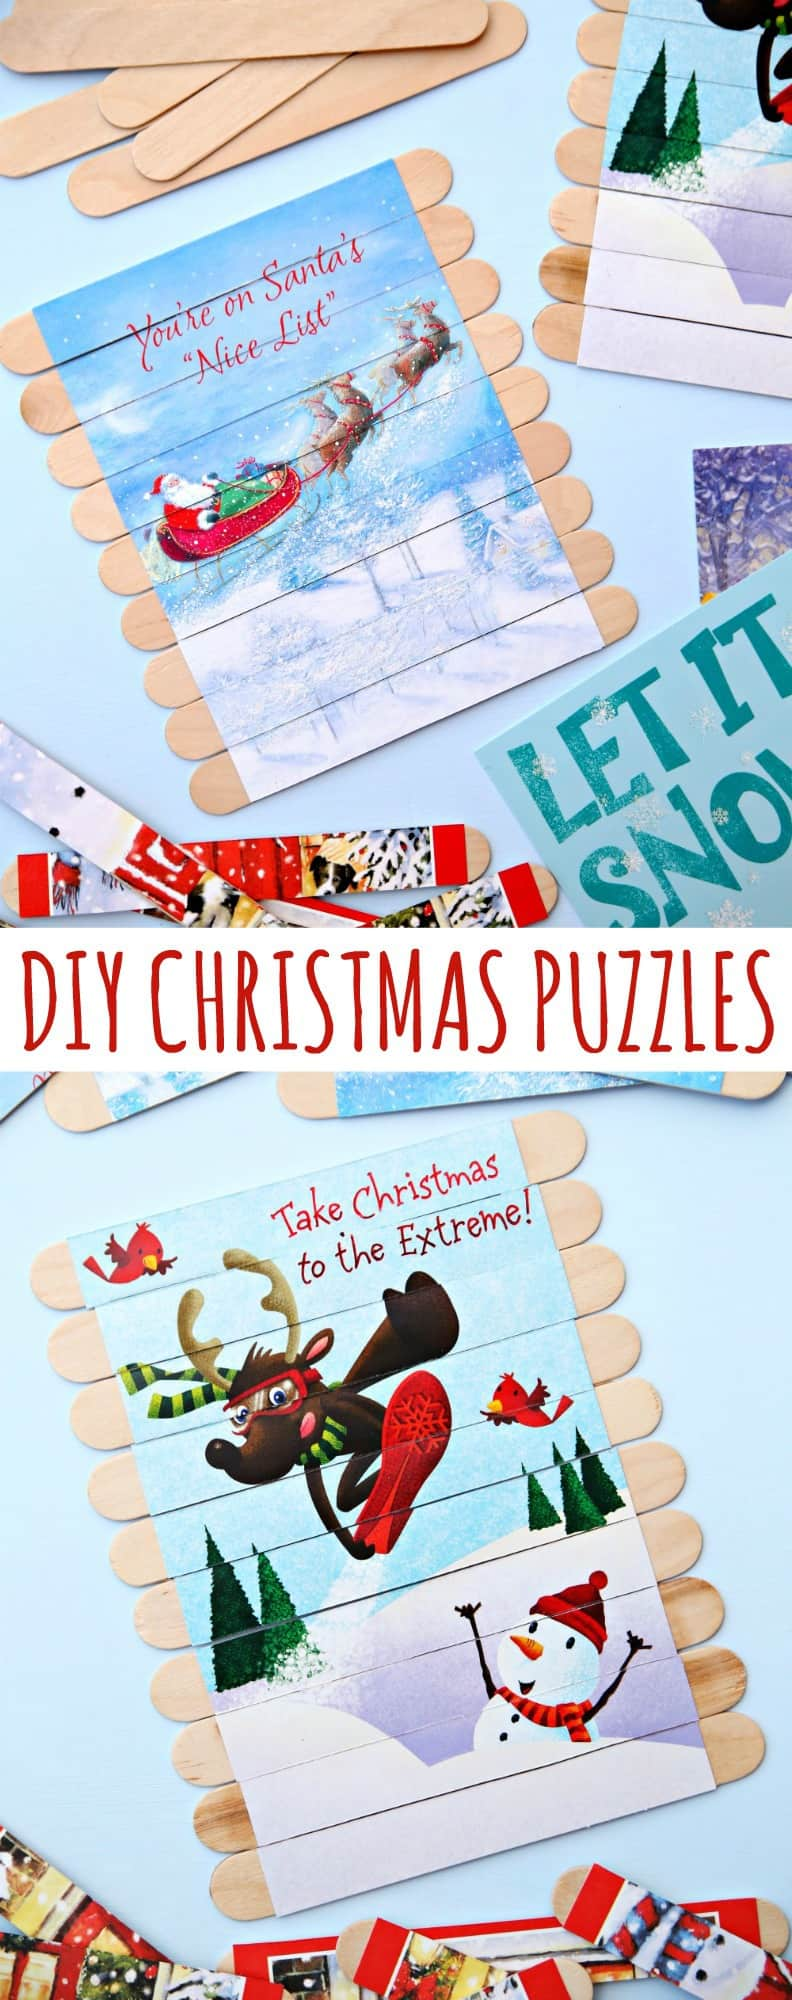 Turn Dollar Store Christmas Cards into DIY Christmas Puzzles